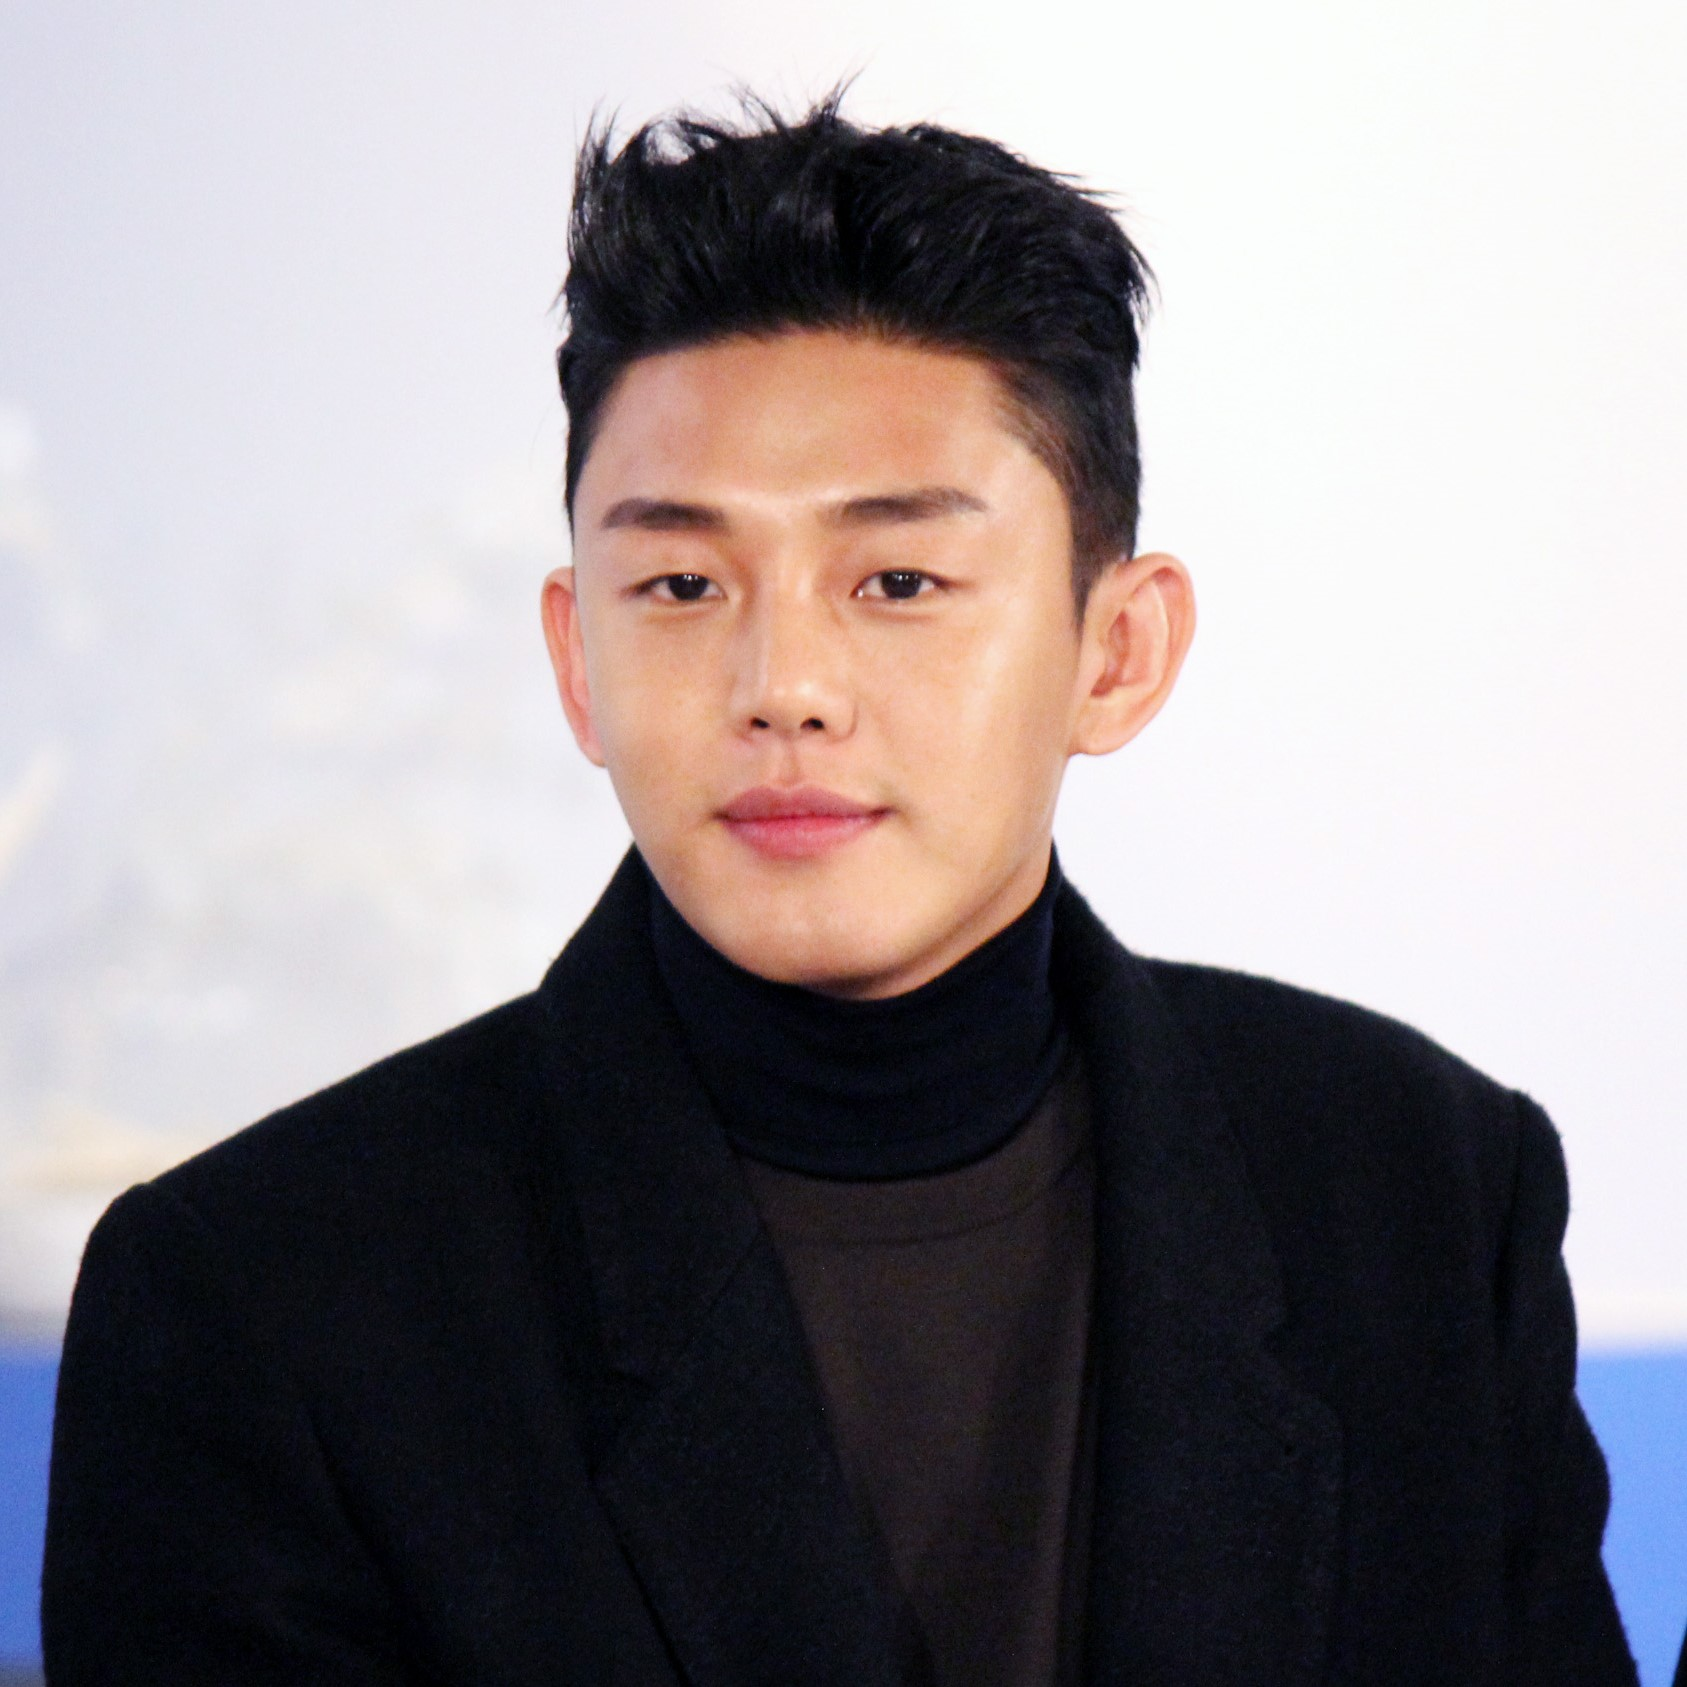 Yoo Ah In Wikipedia